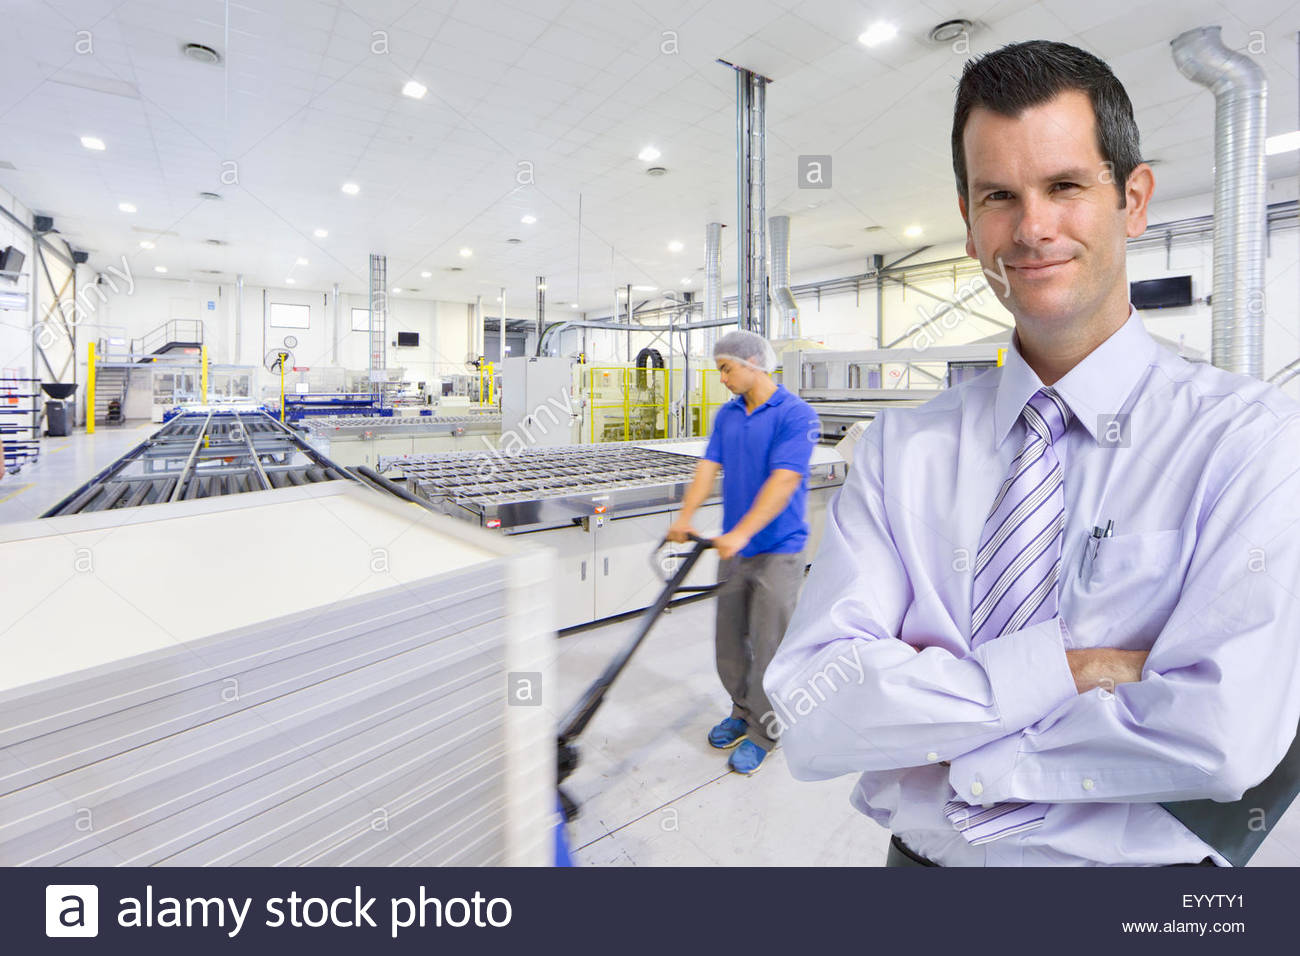 Portrait of businessman owner smiling at camera with worker pulling pallet of solar panels in factory - Stock Image